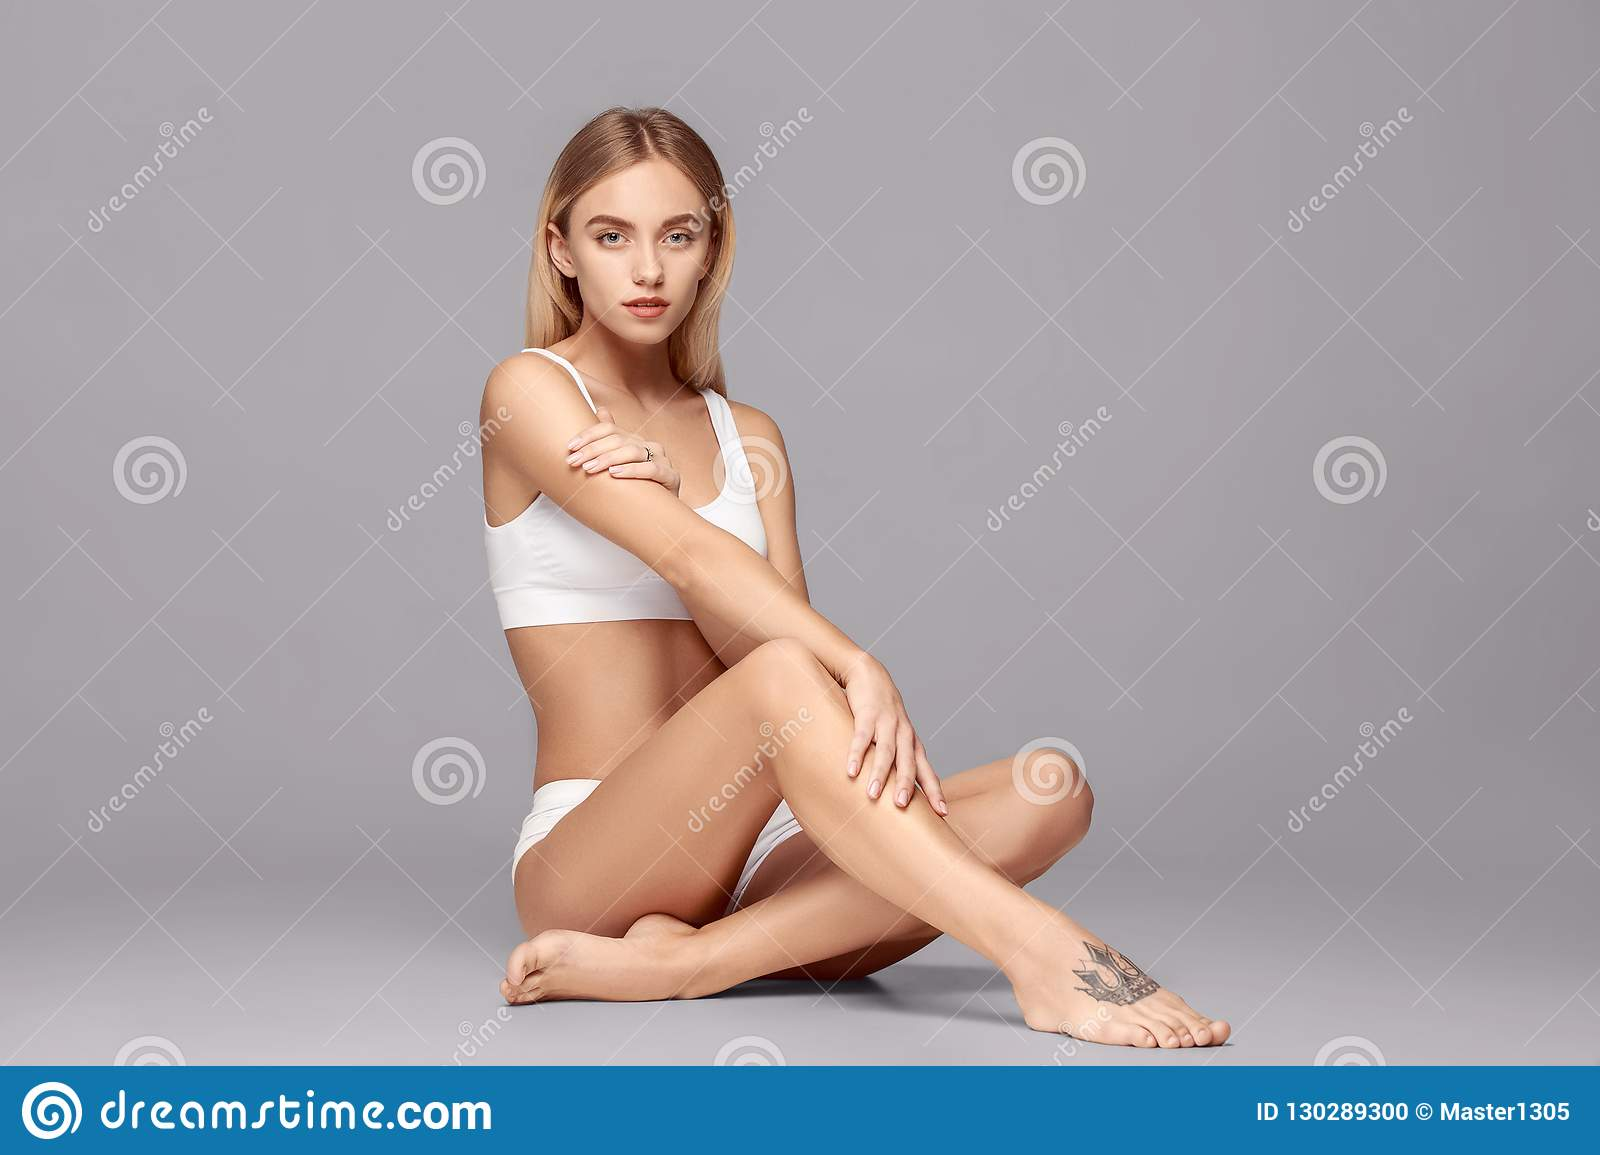 49e8cc3f274 Perfect Slim Toned Young Body Of The Girl . Stock Photo - Image of ...